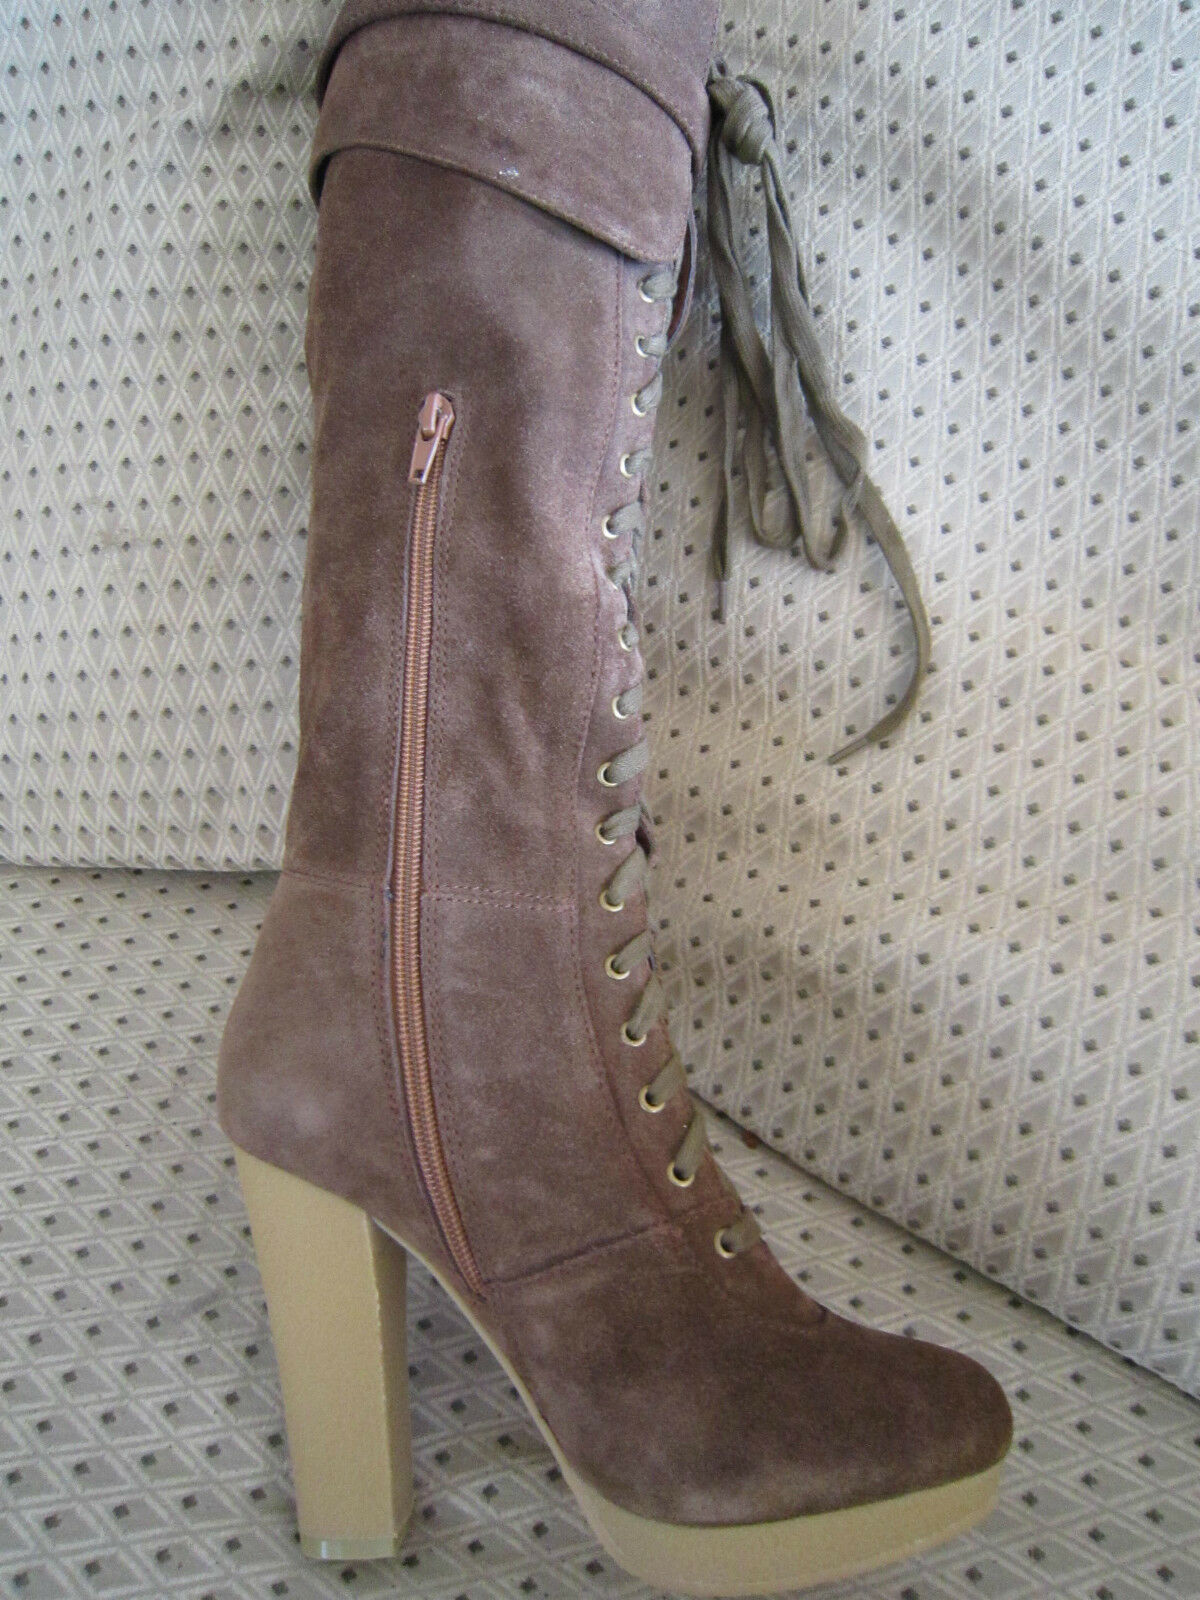 Deliciously Sexy     Chocolate Brown Suede CHARLES DAVID Boots    sz 7